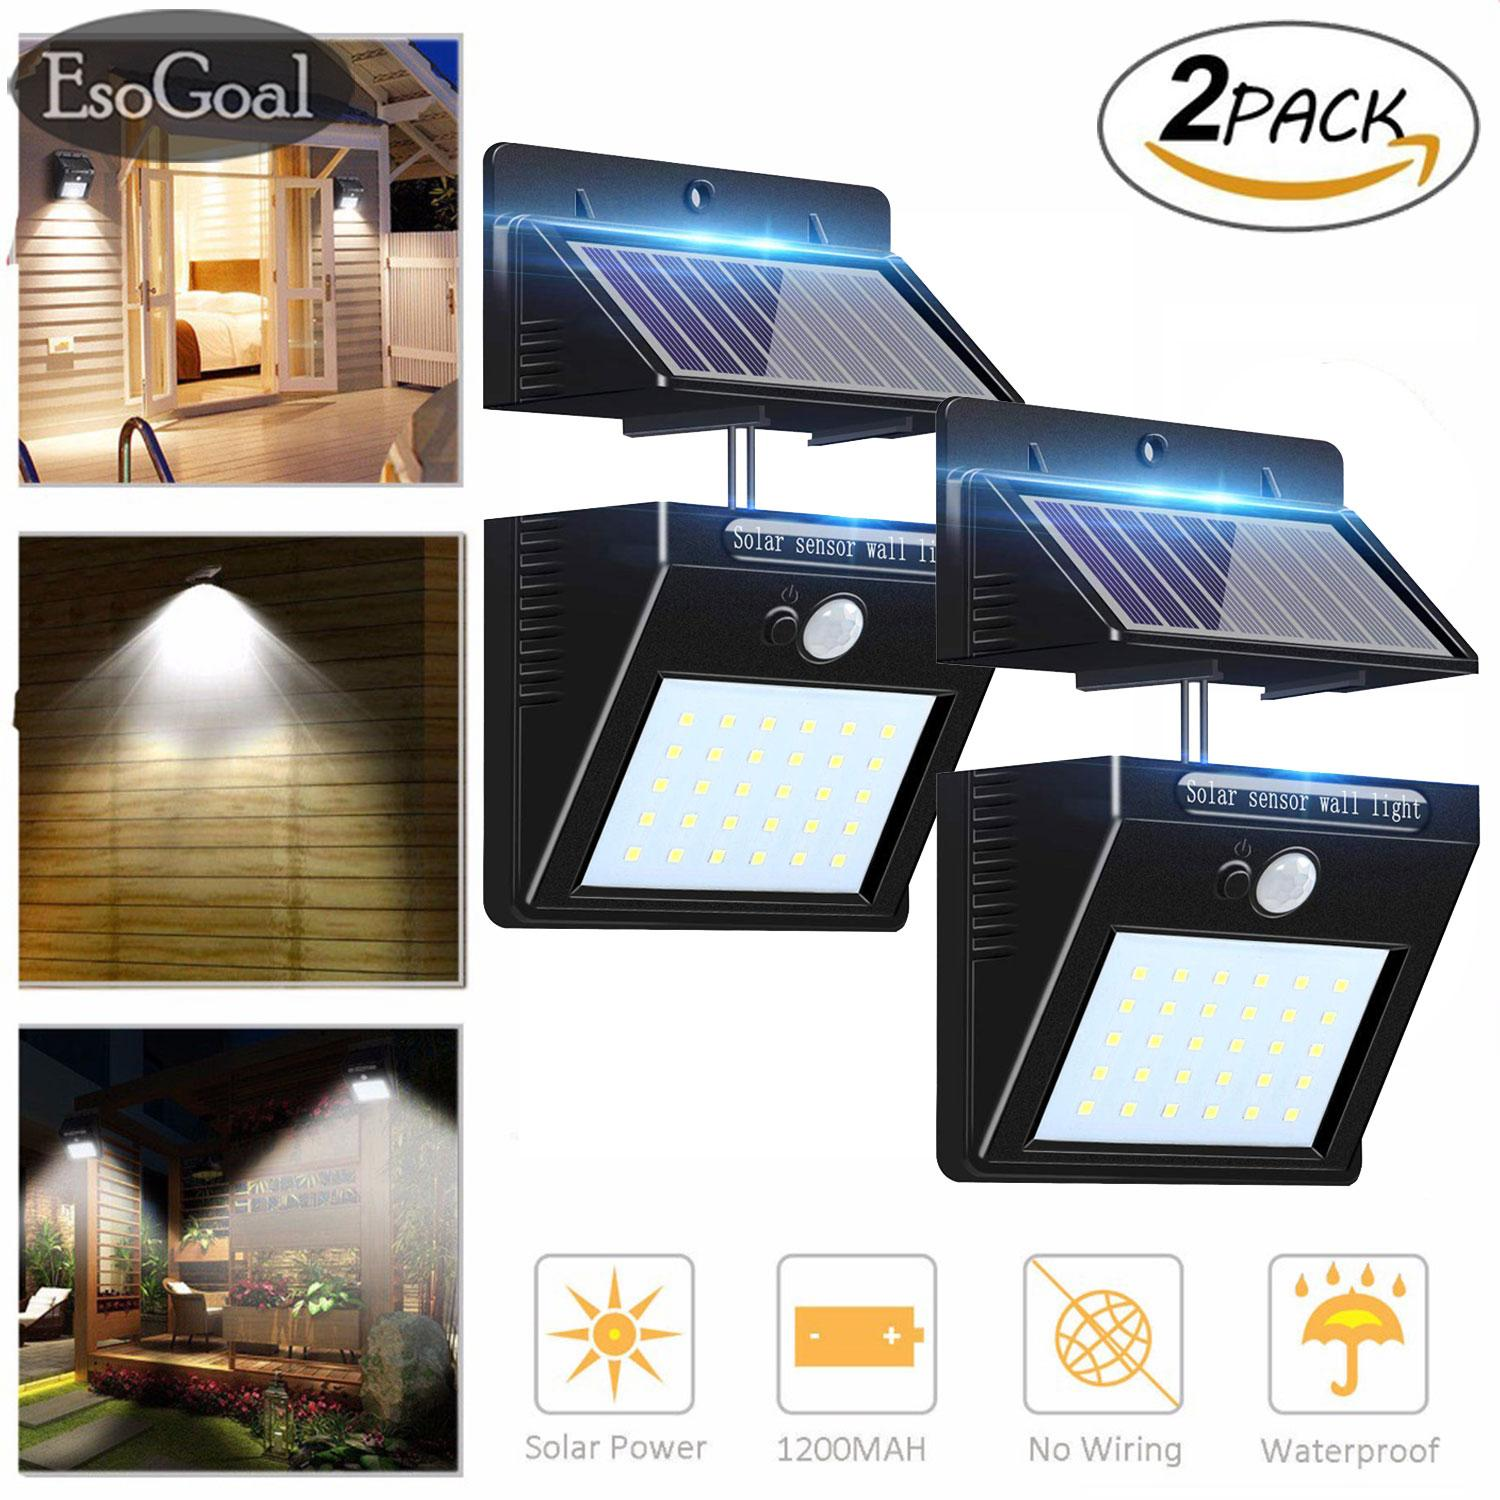 EsoGoal Outdoor Lighting Sensor Solar Wall light 30 LED Solar Lights with Separable Solar Panel Waterproof Solar Powered Motion Sensor Light Wireless Security Lights Outside Wall Lamp for Driveway Patio Garden Path (2 Pack)